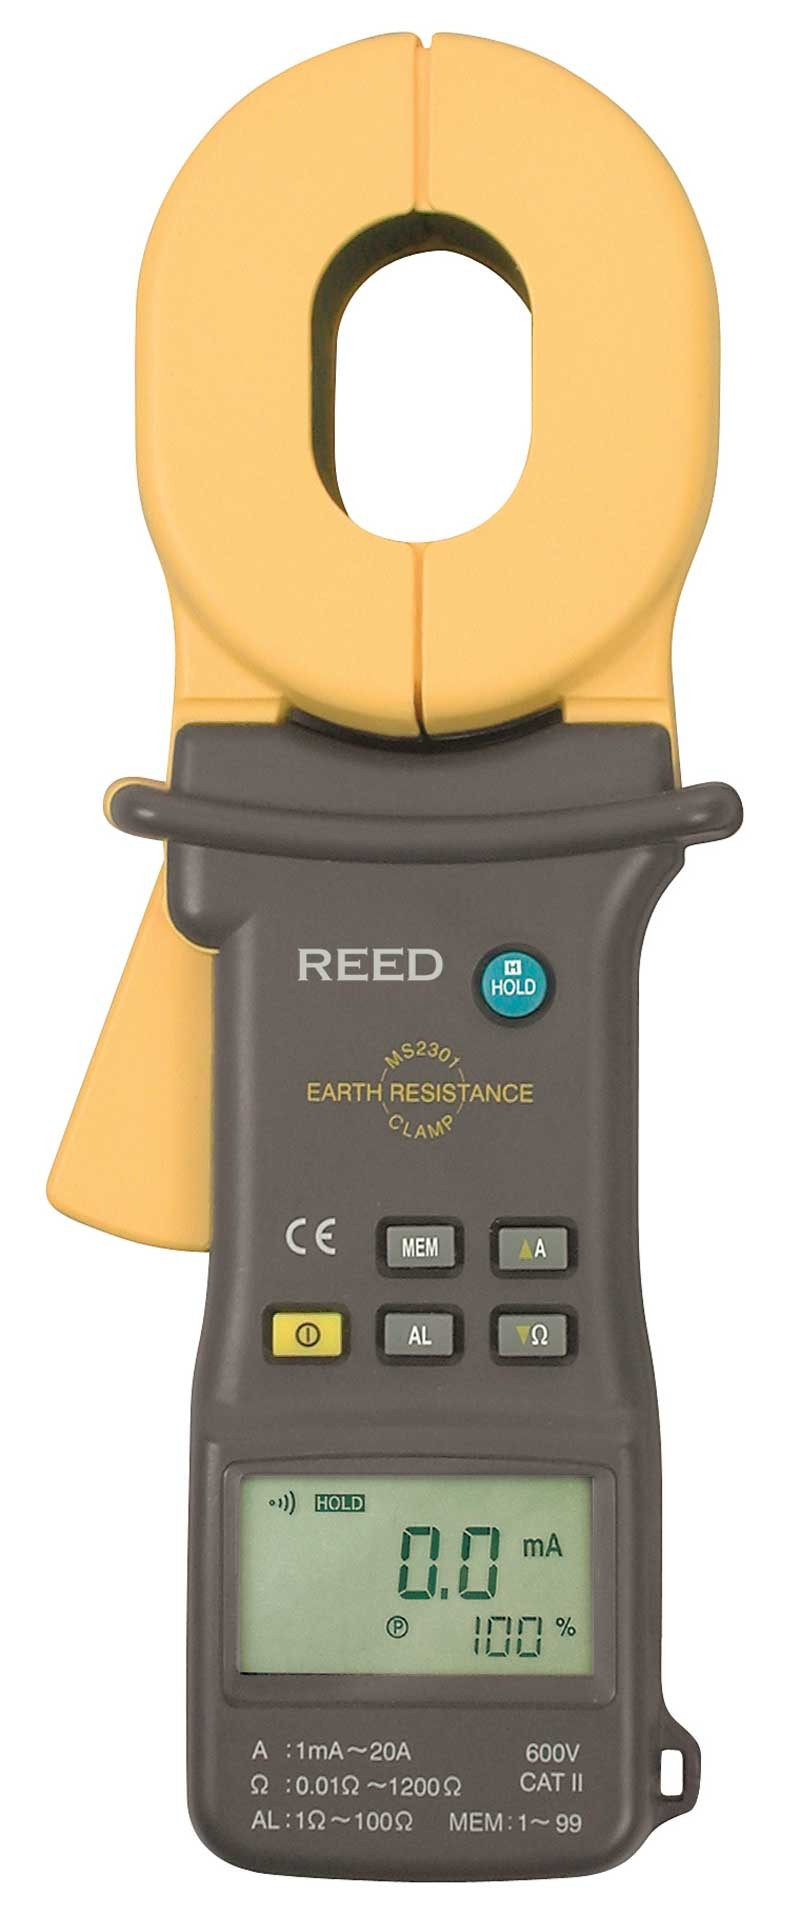 REED MS2301 Clamp-on Ground Resistance Tester-